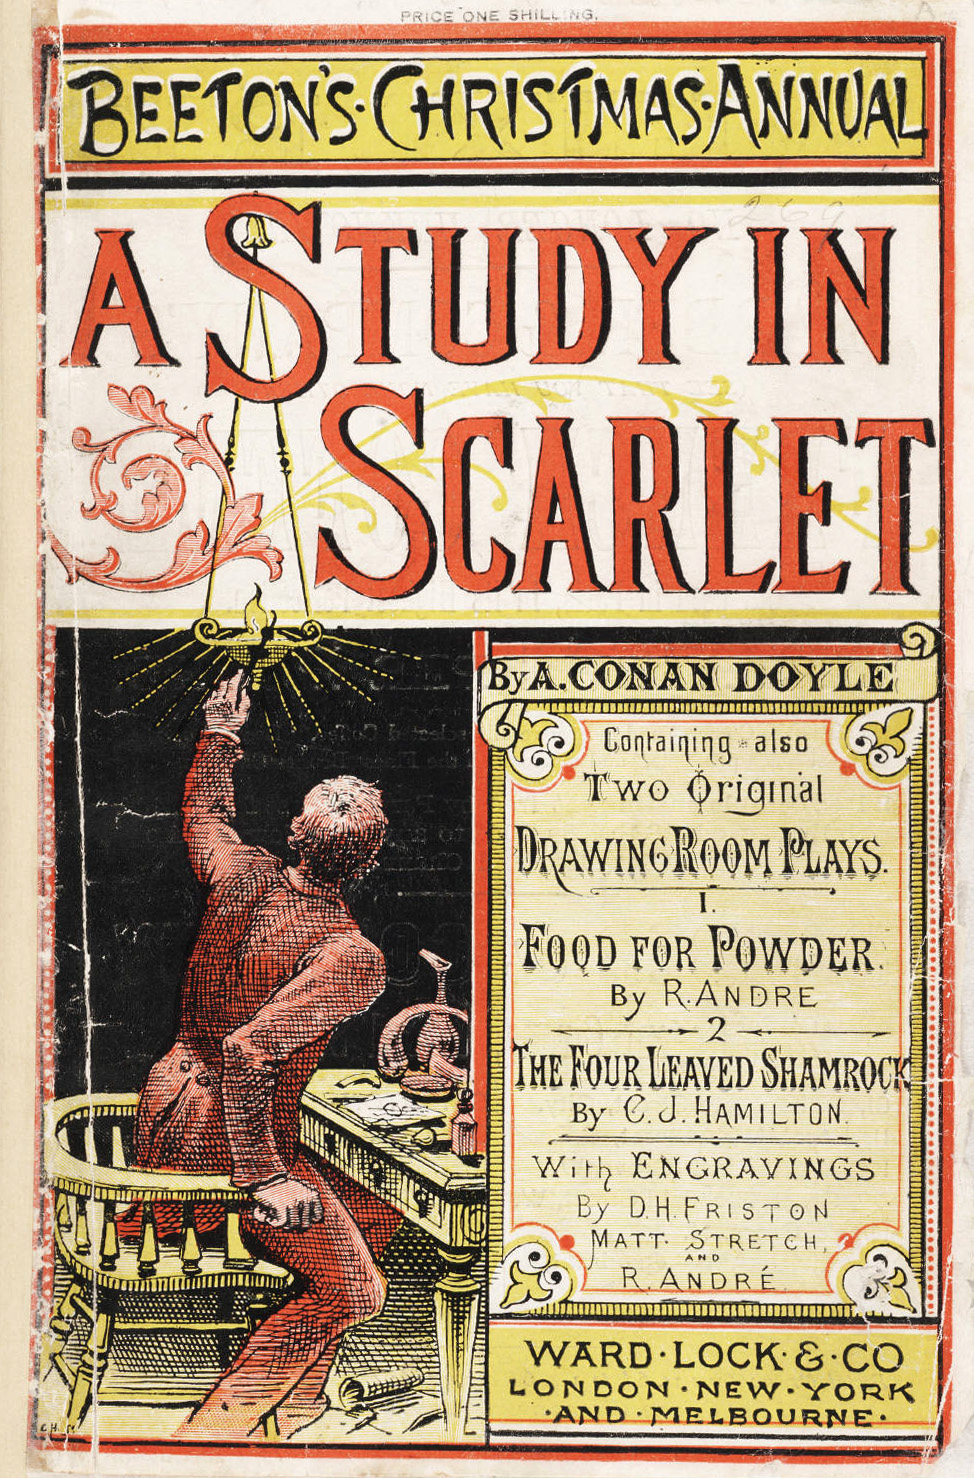 A_Study_in_Scarlet_from_Beeton's_Christmas_Annual_1887.jpg